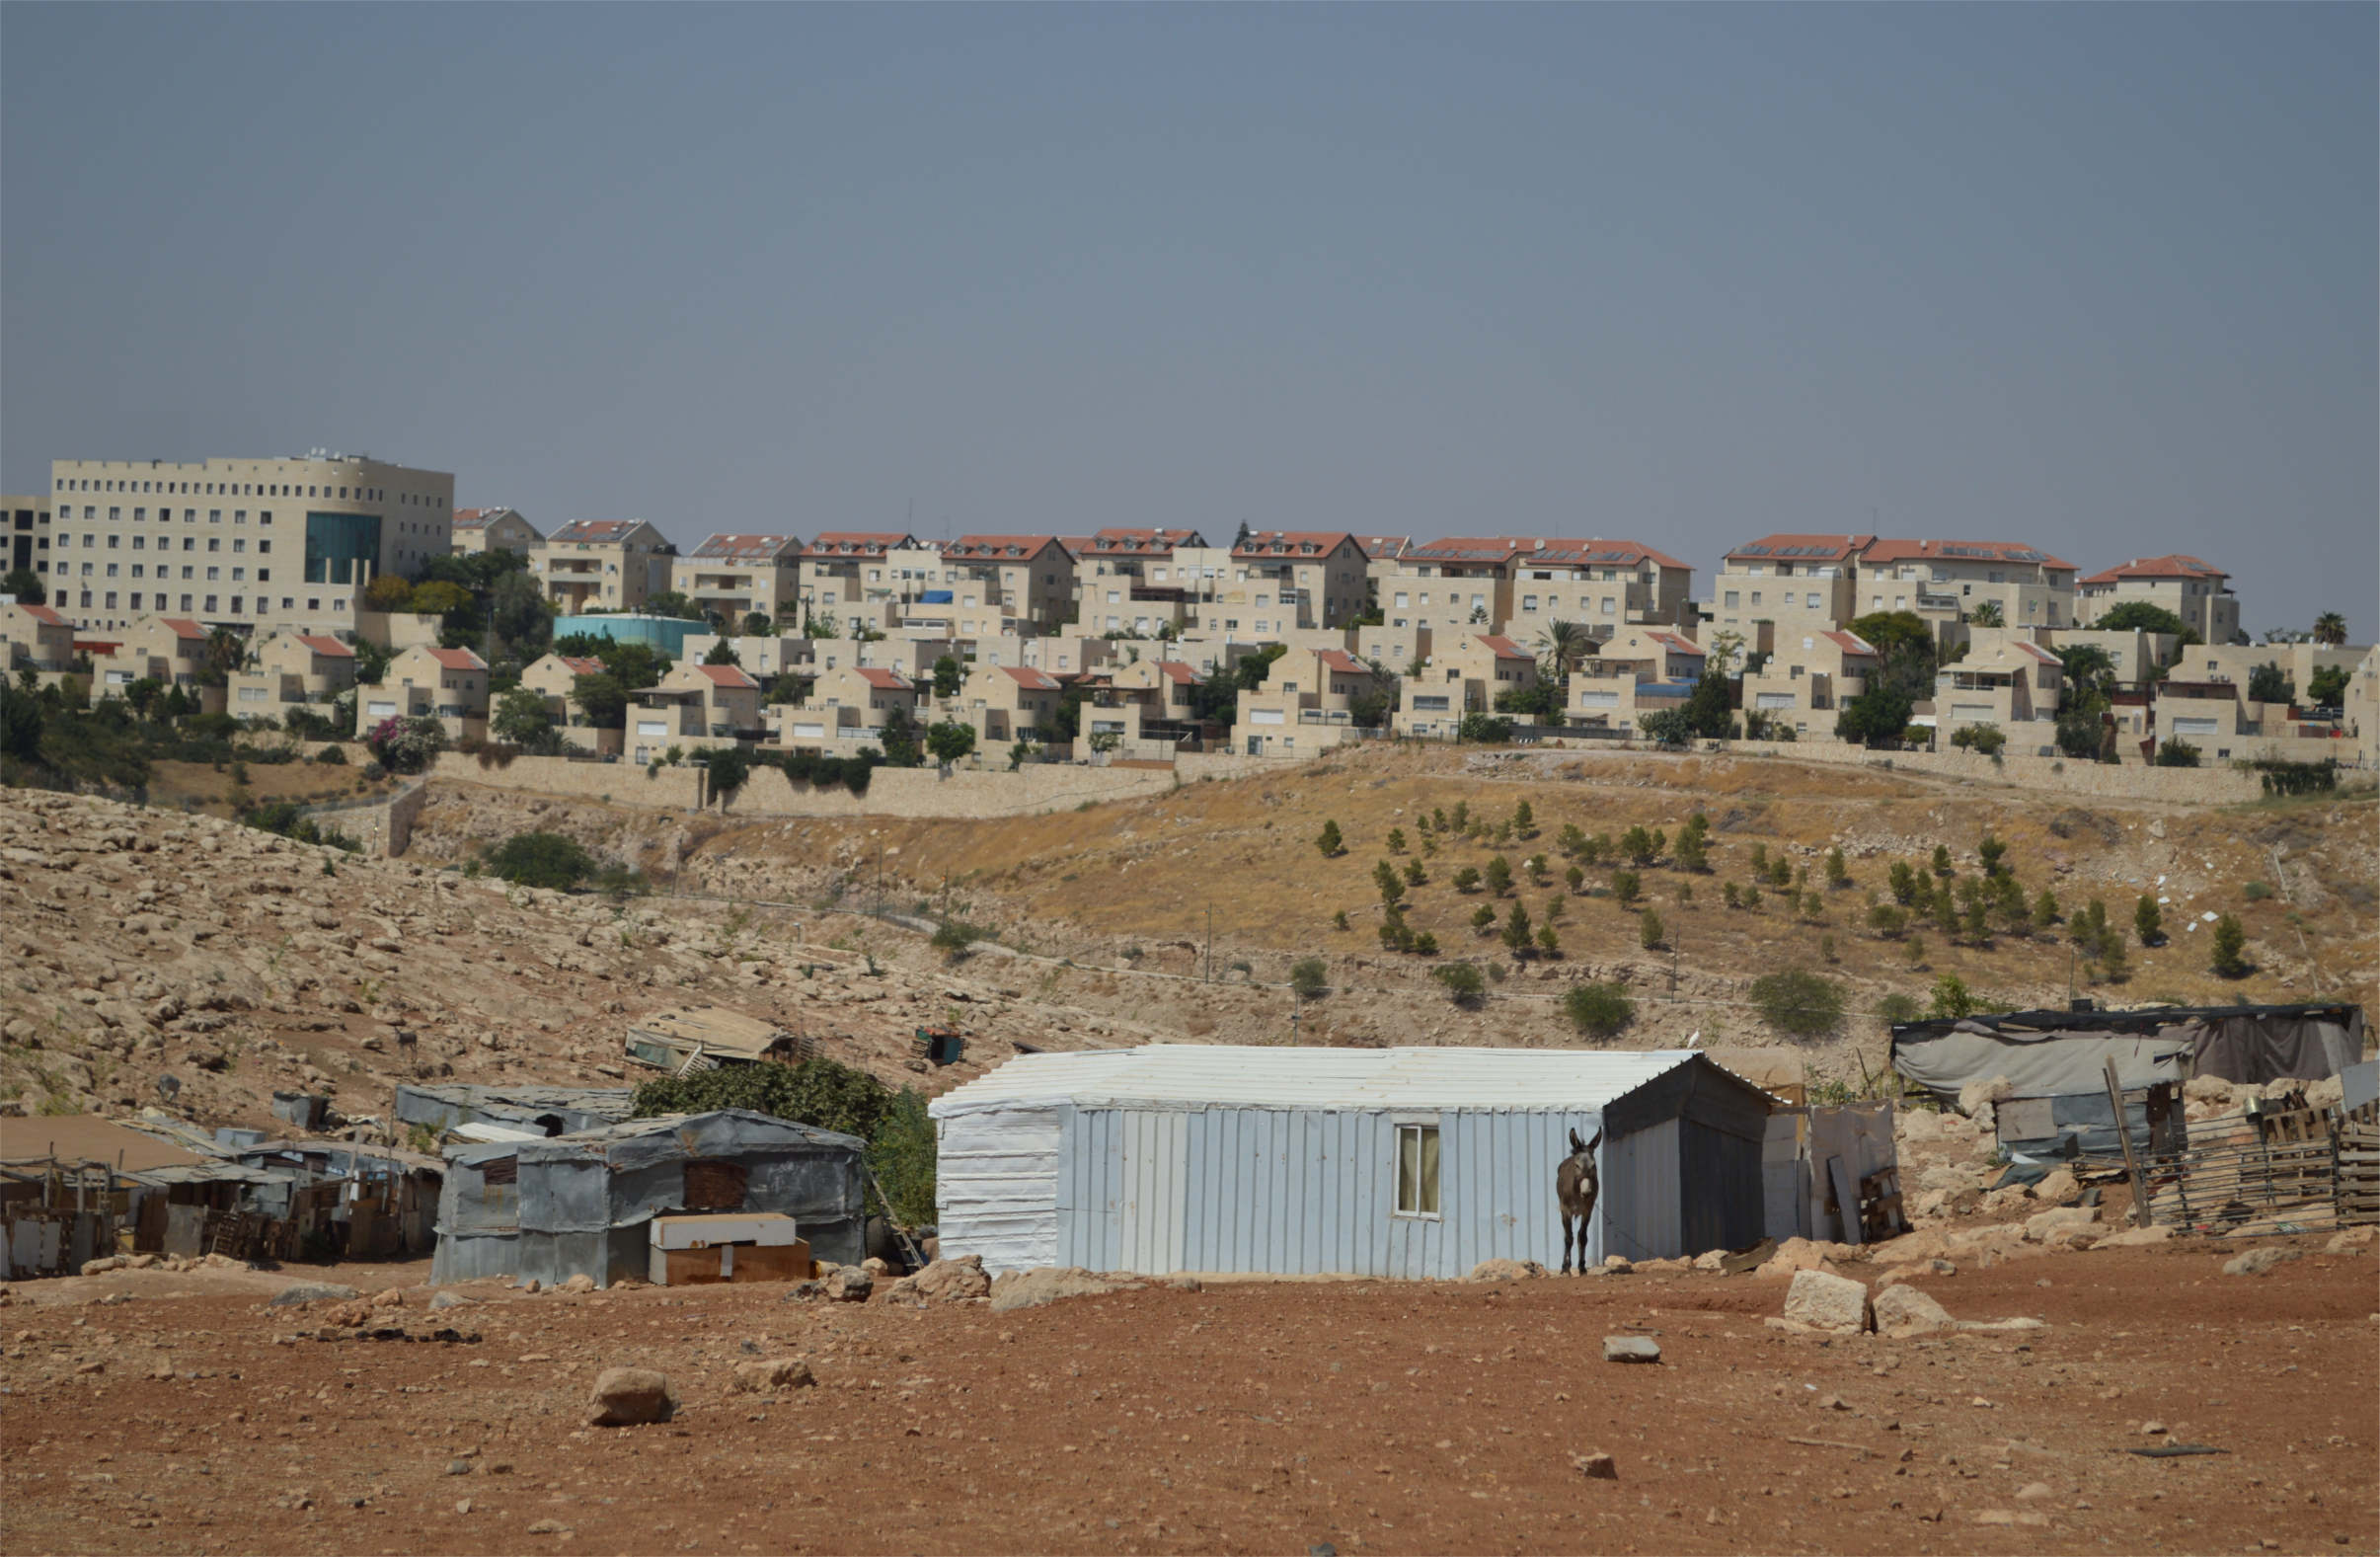 Abu Nuwwar struggles to survive in the shadow of the massive Israeli settlement Ma'ale Adumim. (Photo: Lydia Noon)